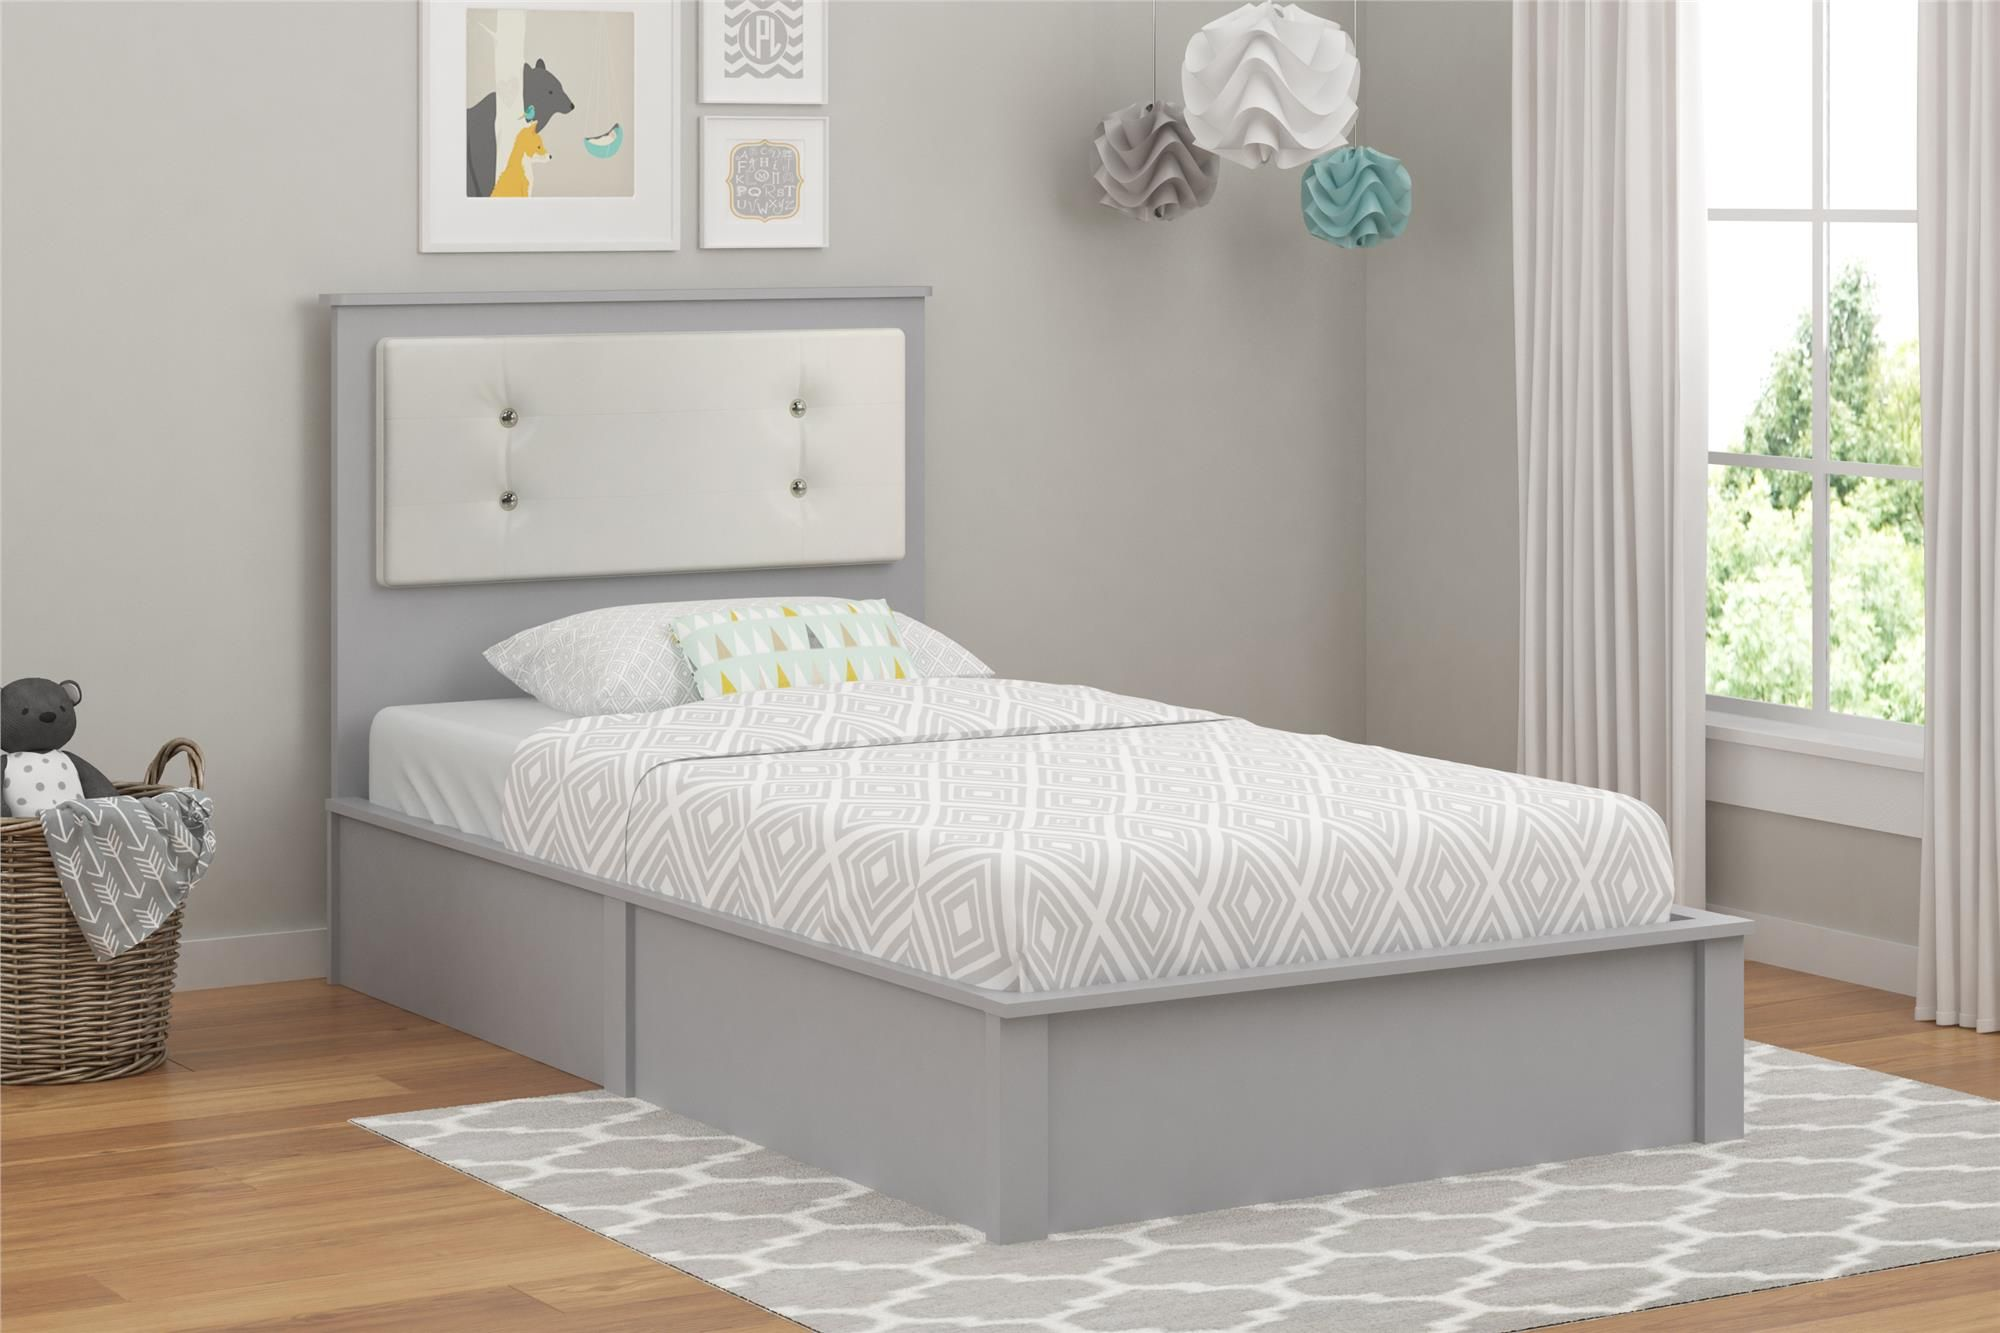 The Cosco Willow Lake Twin Platform Bed Will Be The Centerpiece Of Any Child S Bedroom The Headboard Features A Panel Twin Platform Bed White Upholstery Home